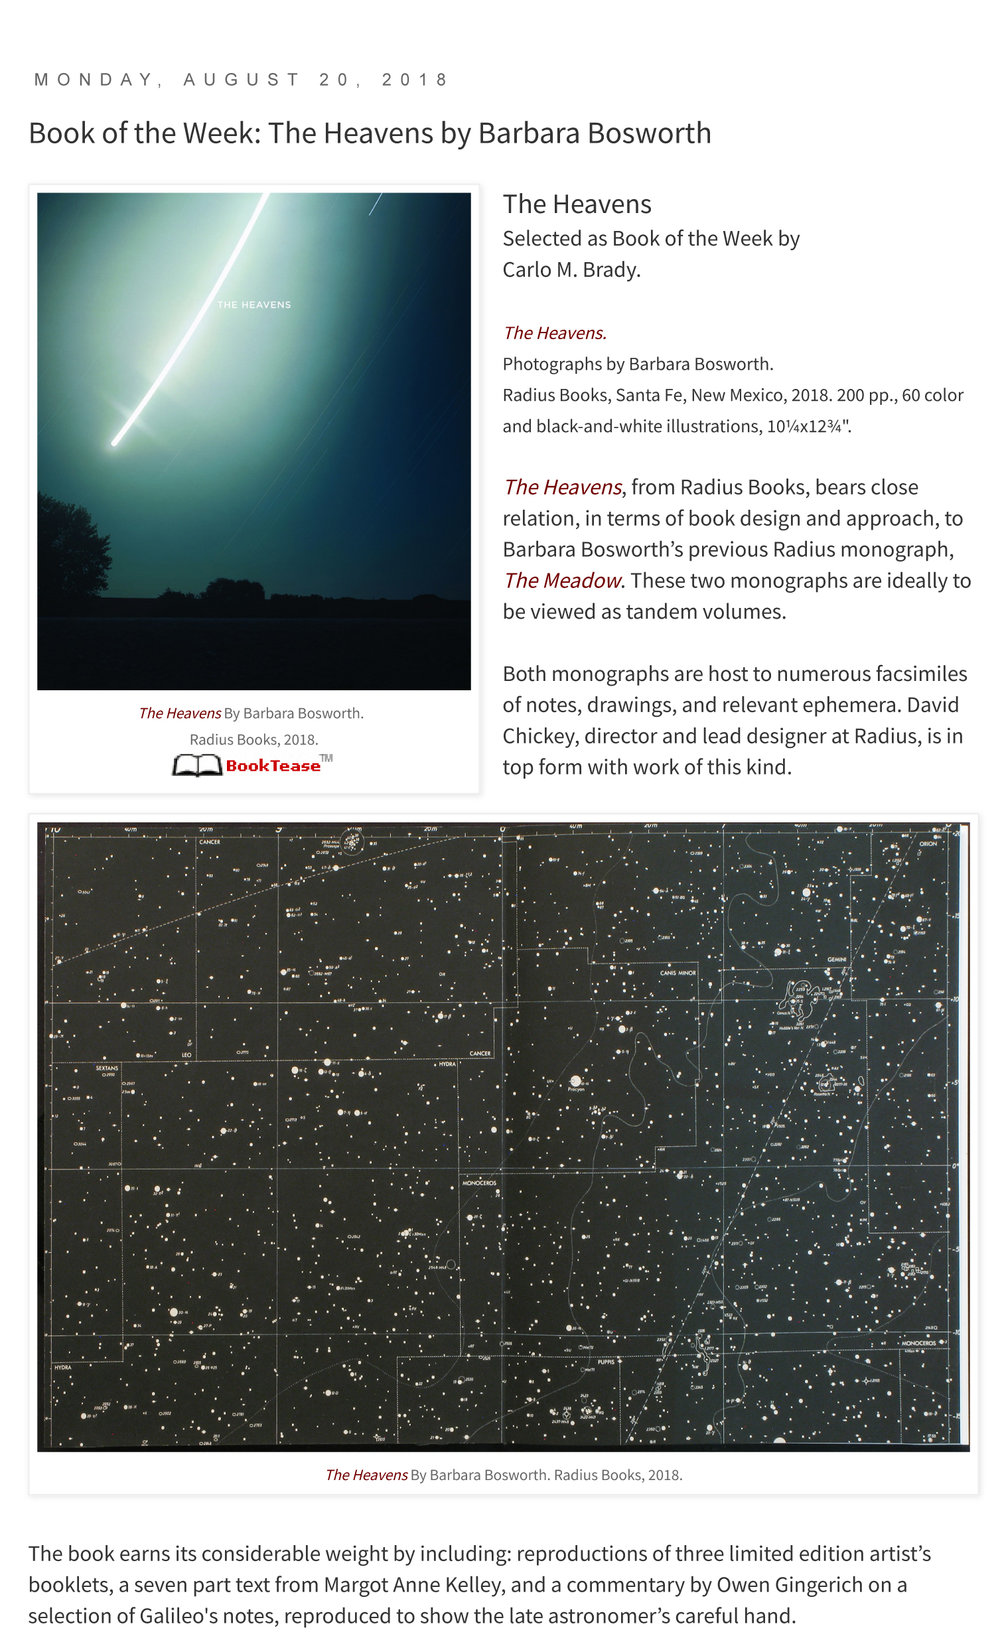 photo-eye _ BLOG_ Book of the Week_ The Heavens by Barbara Bosworth-1.jpg